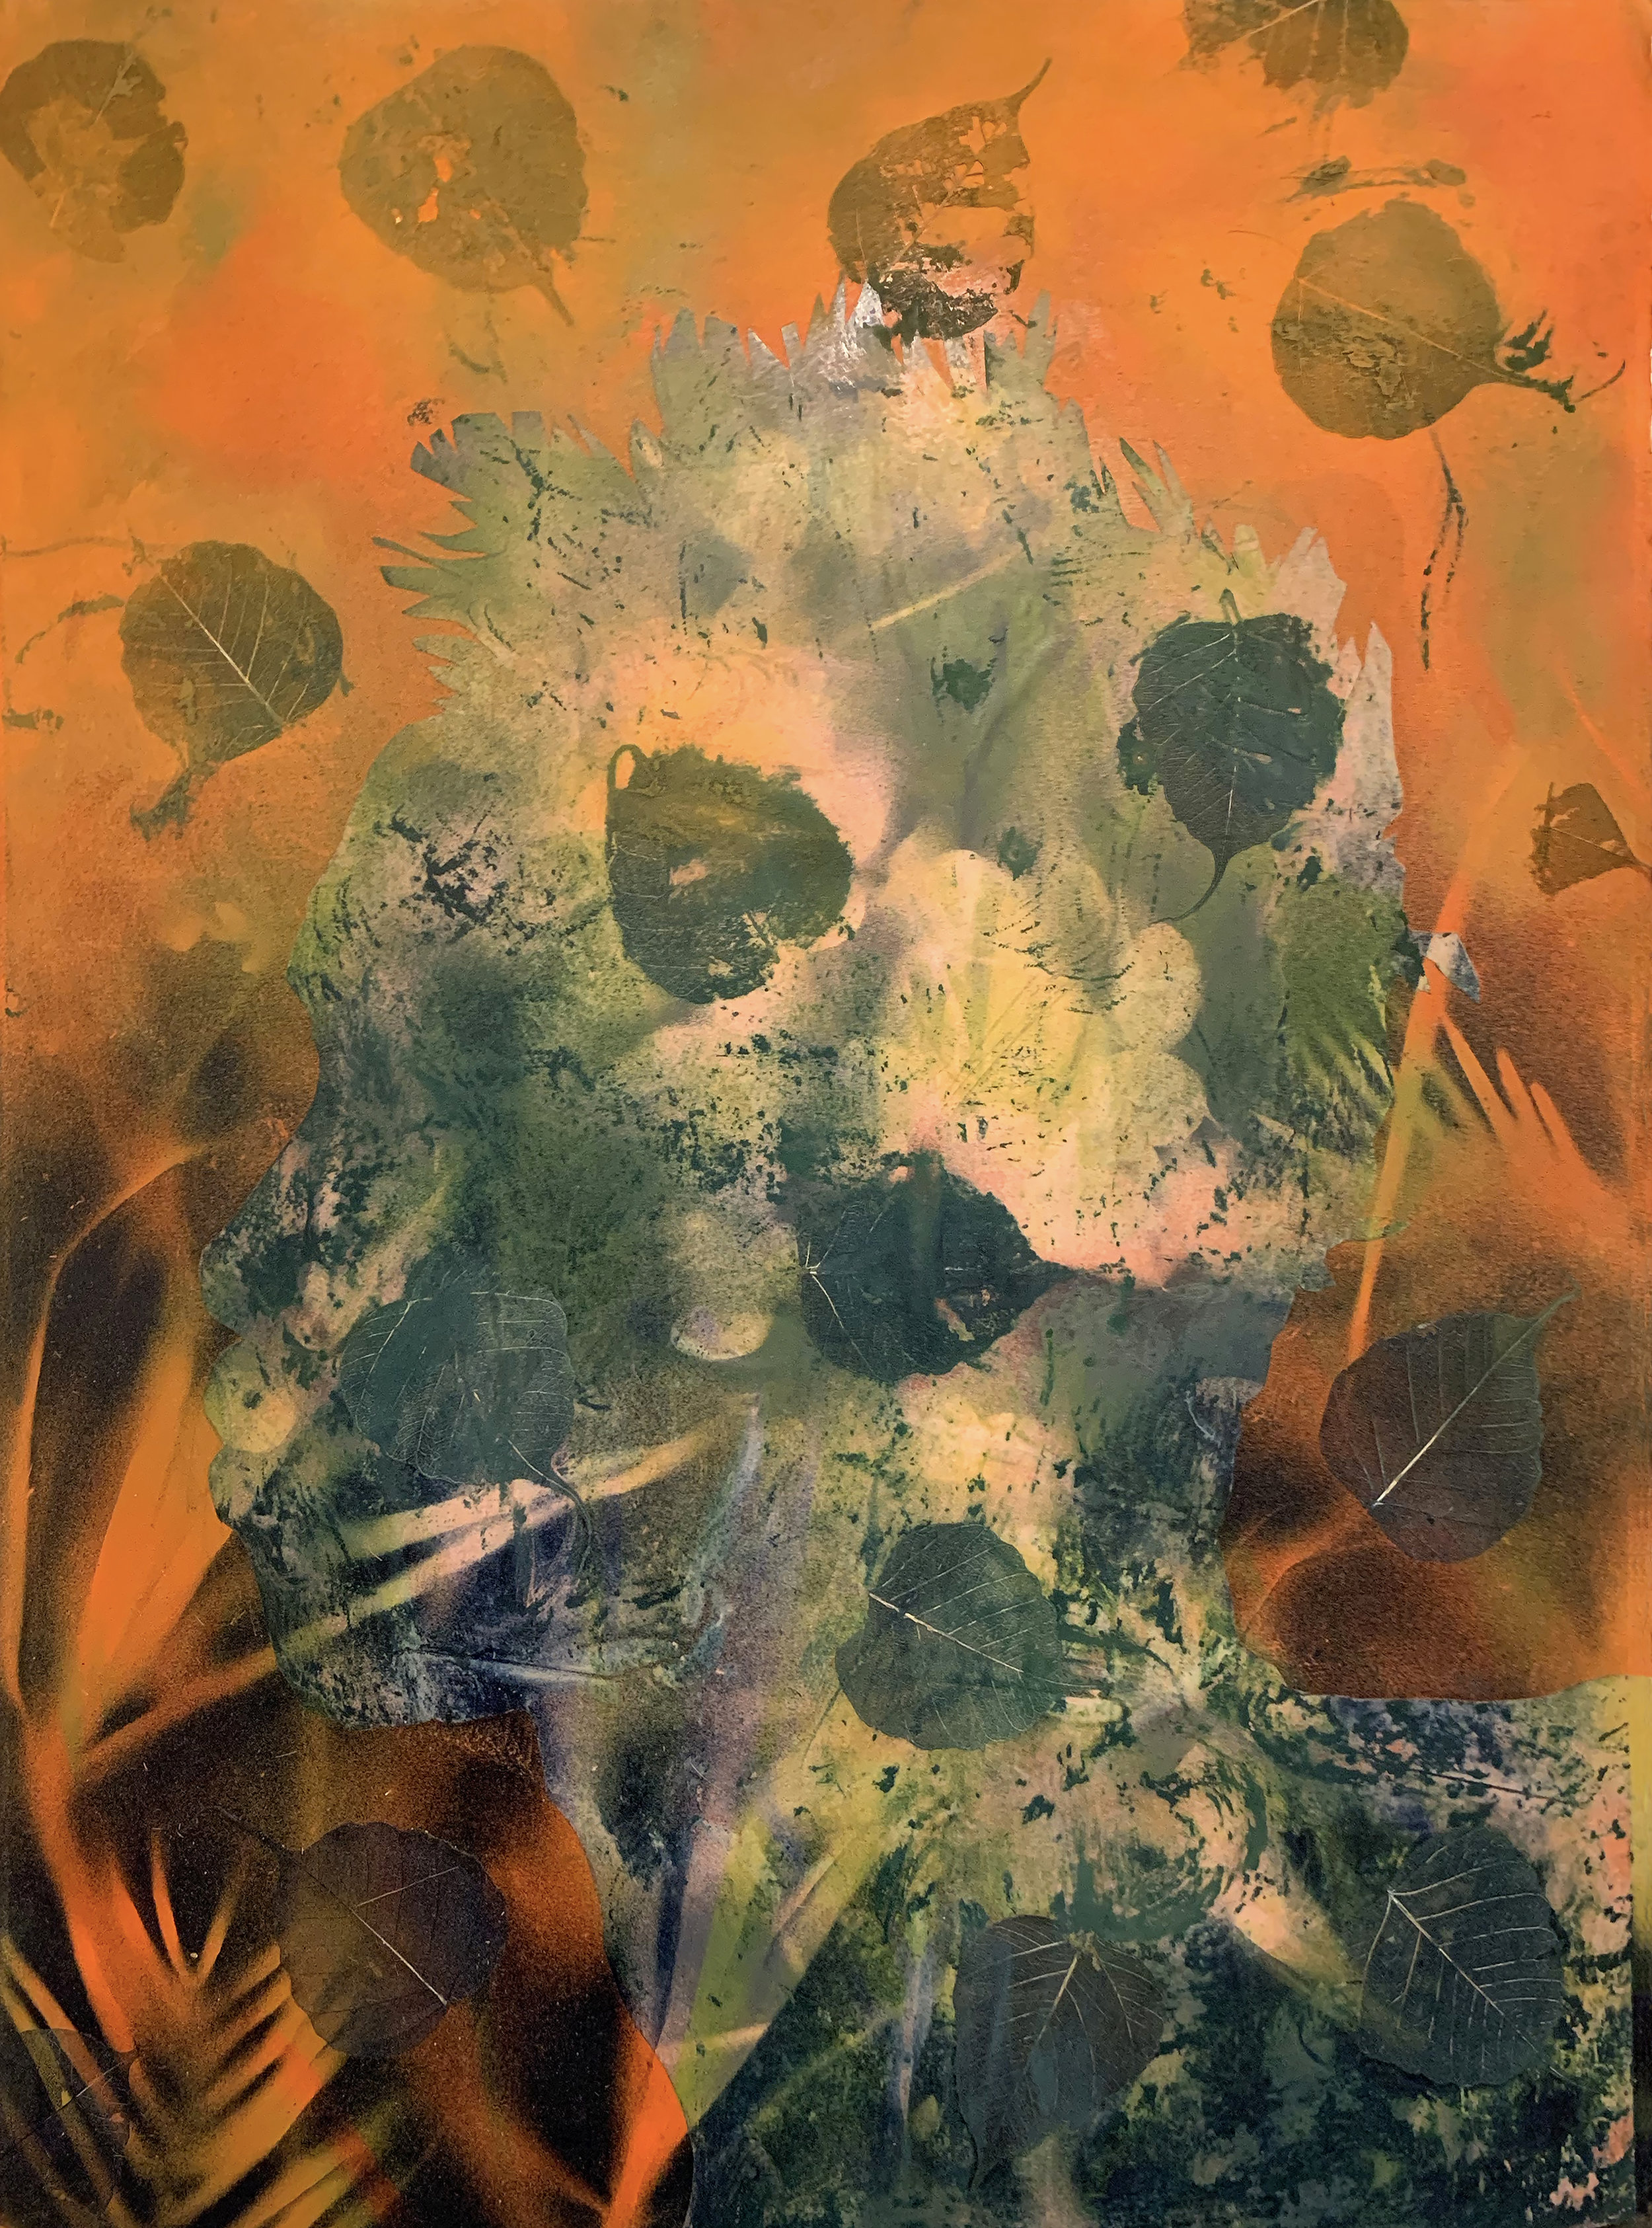 """Cane Sugar (I'm learning to love the parts of myself that no one claps for) Medium: Assorted Charcoal densities, mylar, aerosol orange & green, flora & fauna Dimensions: 22.5"""" x 30"""" Year: 2019"""